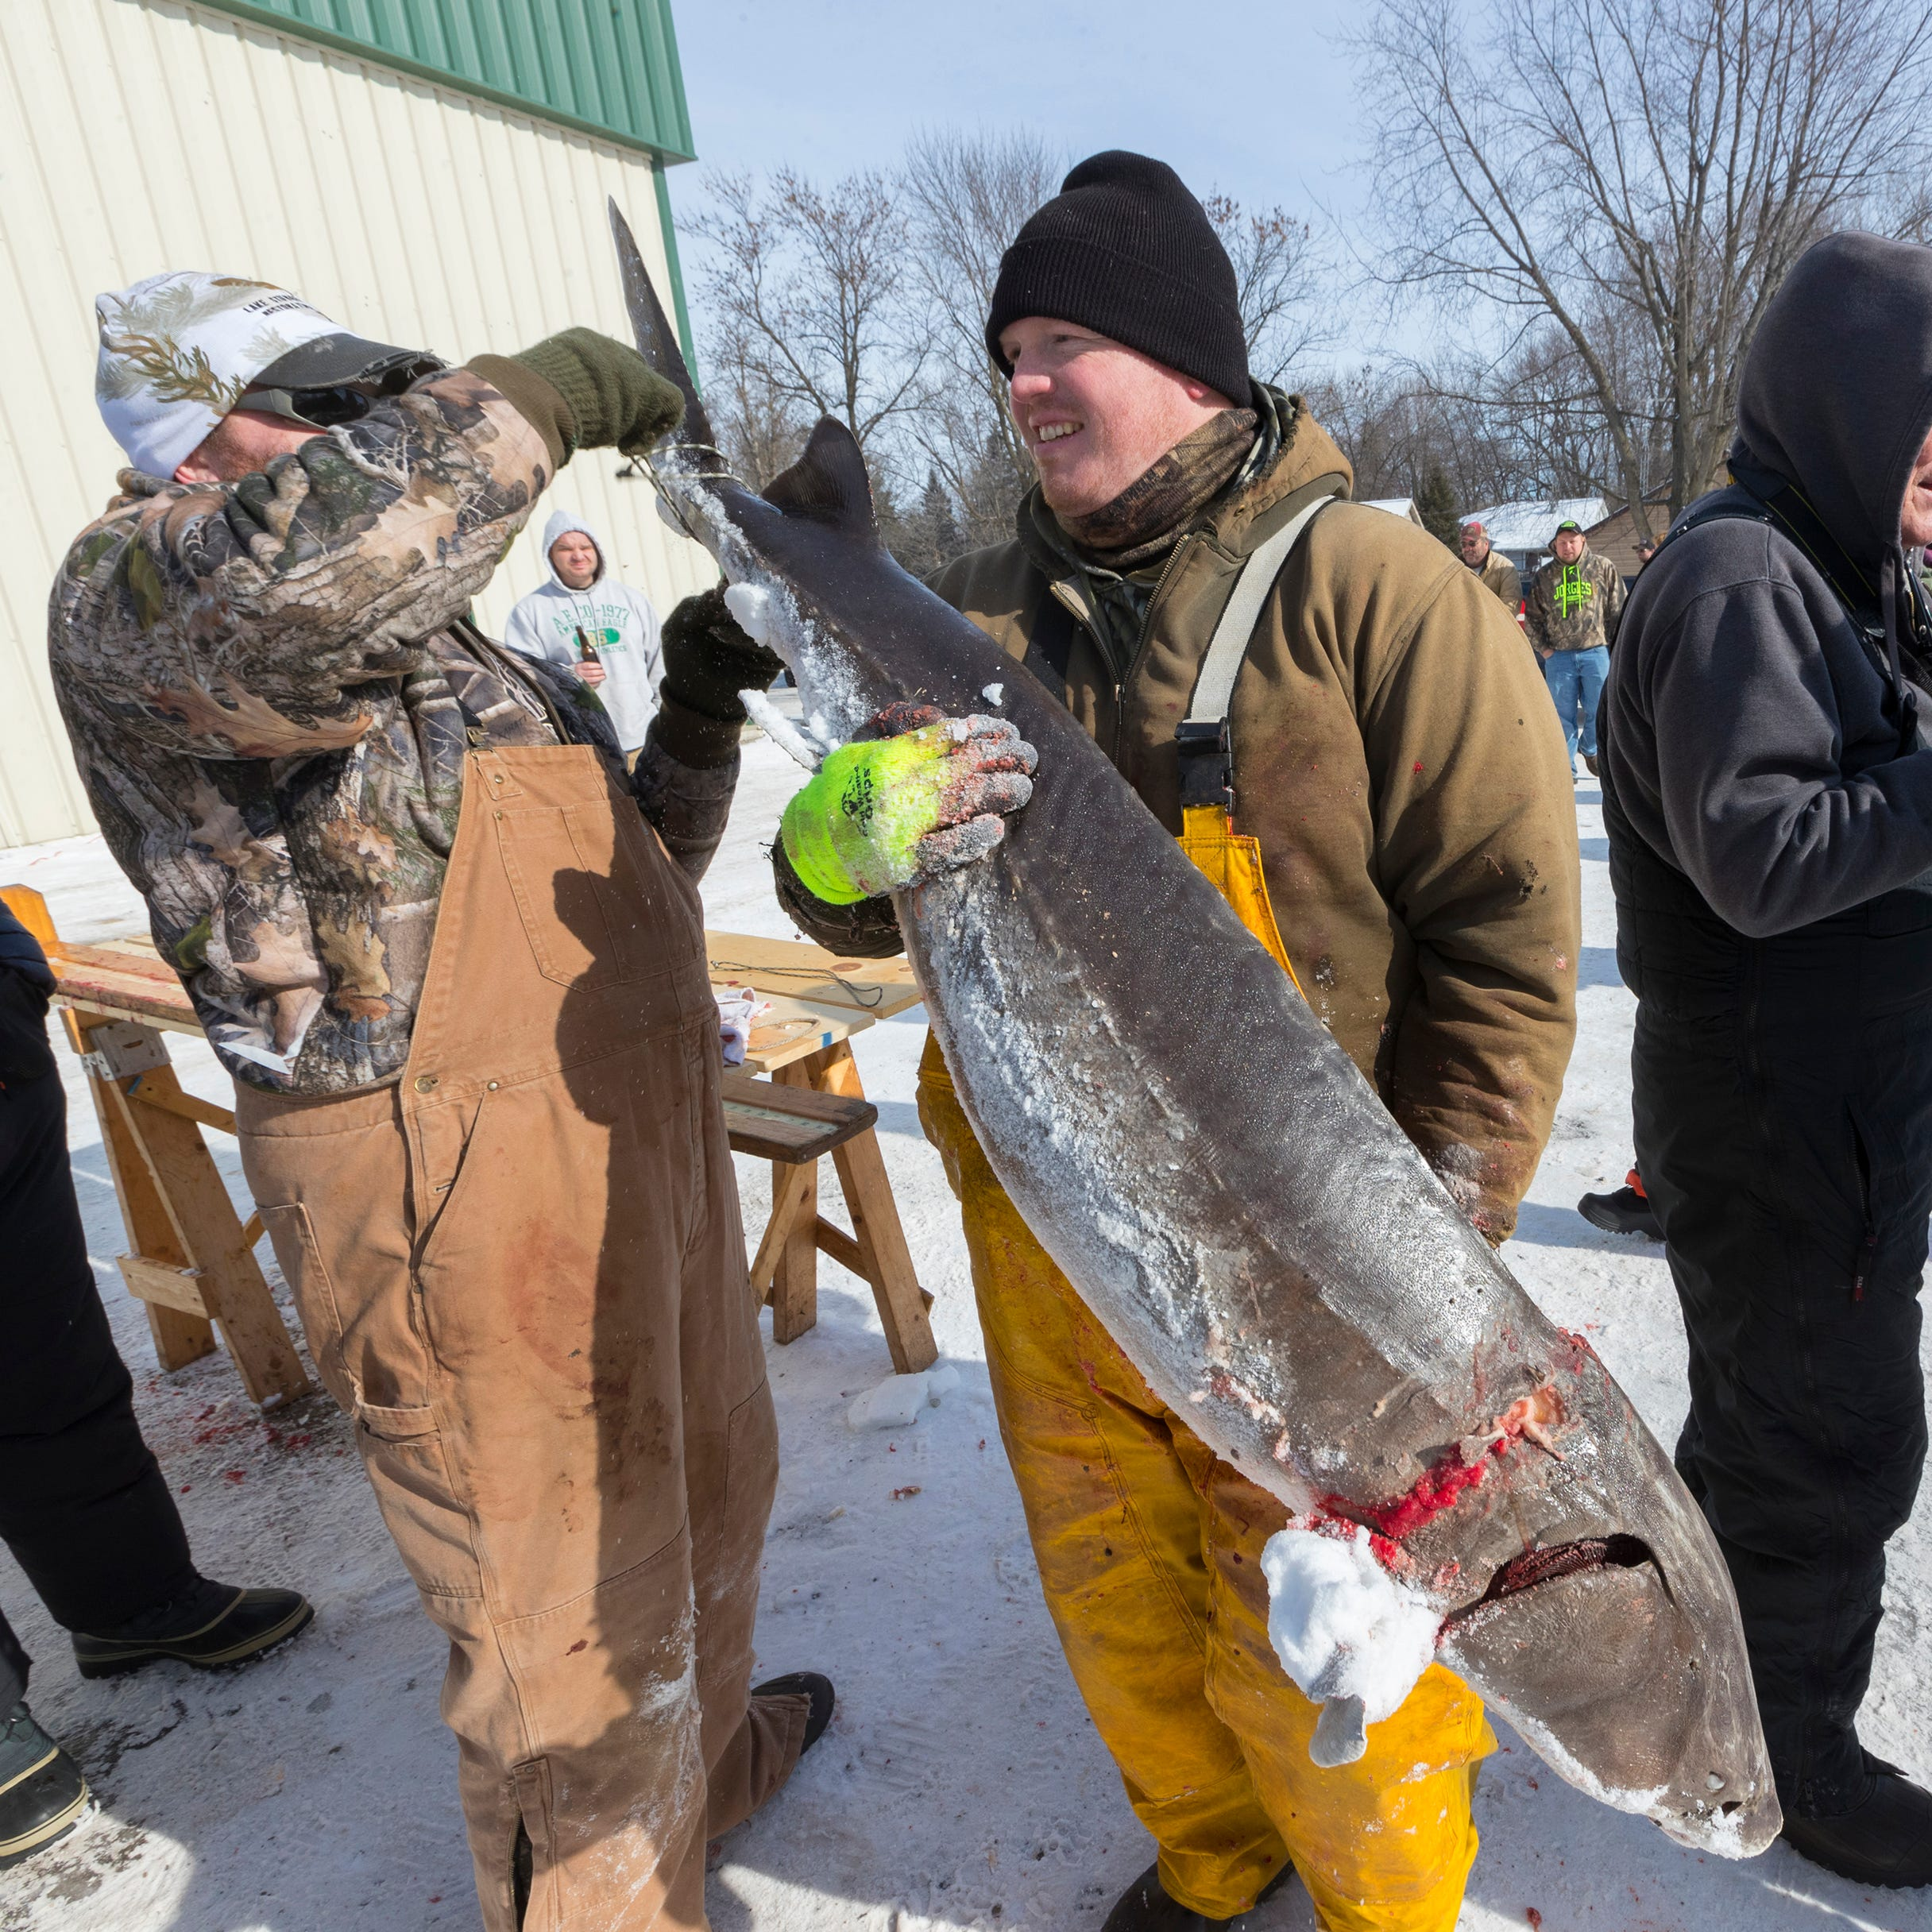 Sturgeon-spearing season ends for upriver lakes as DNR cap reached